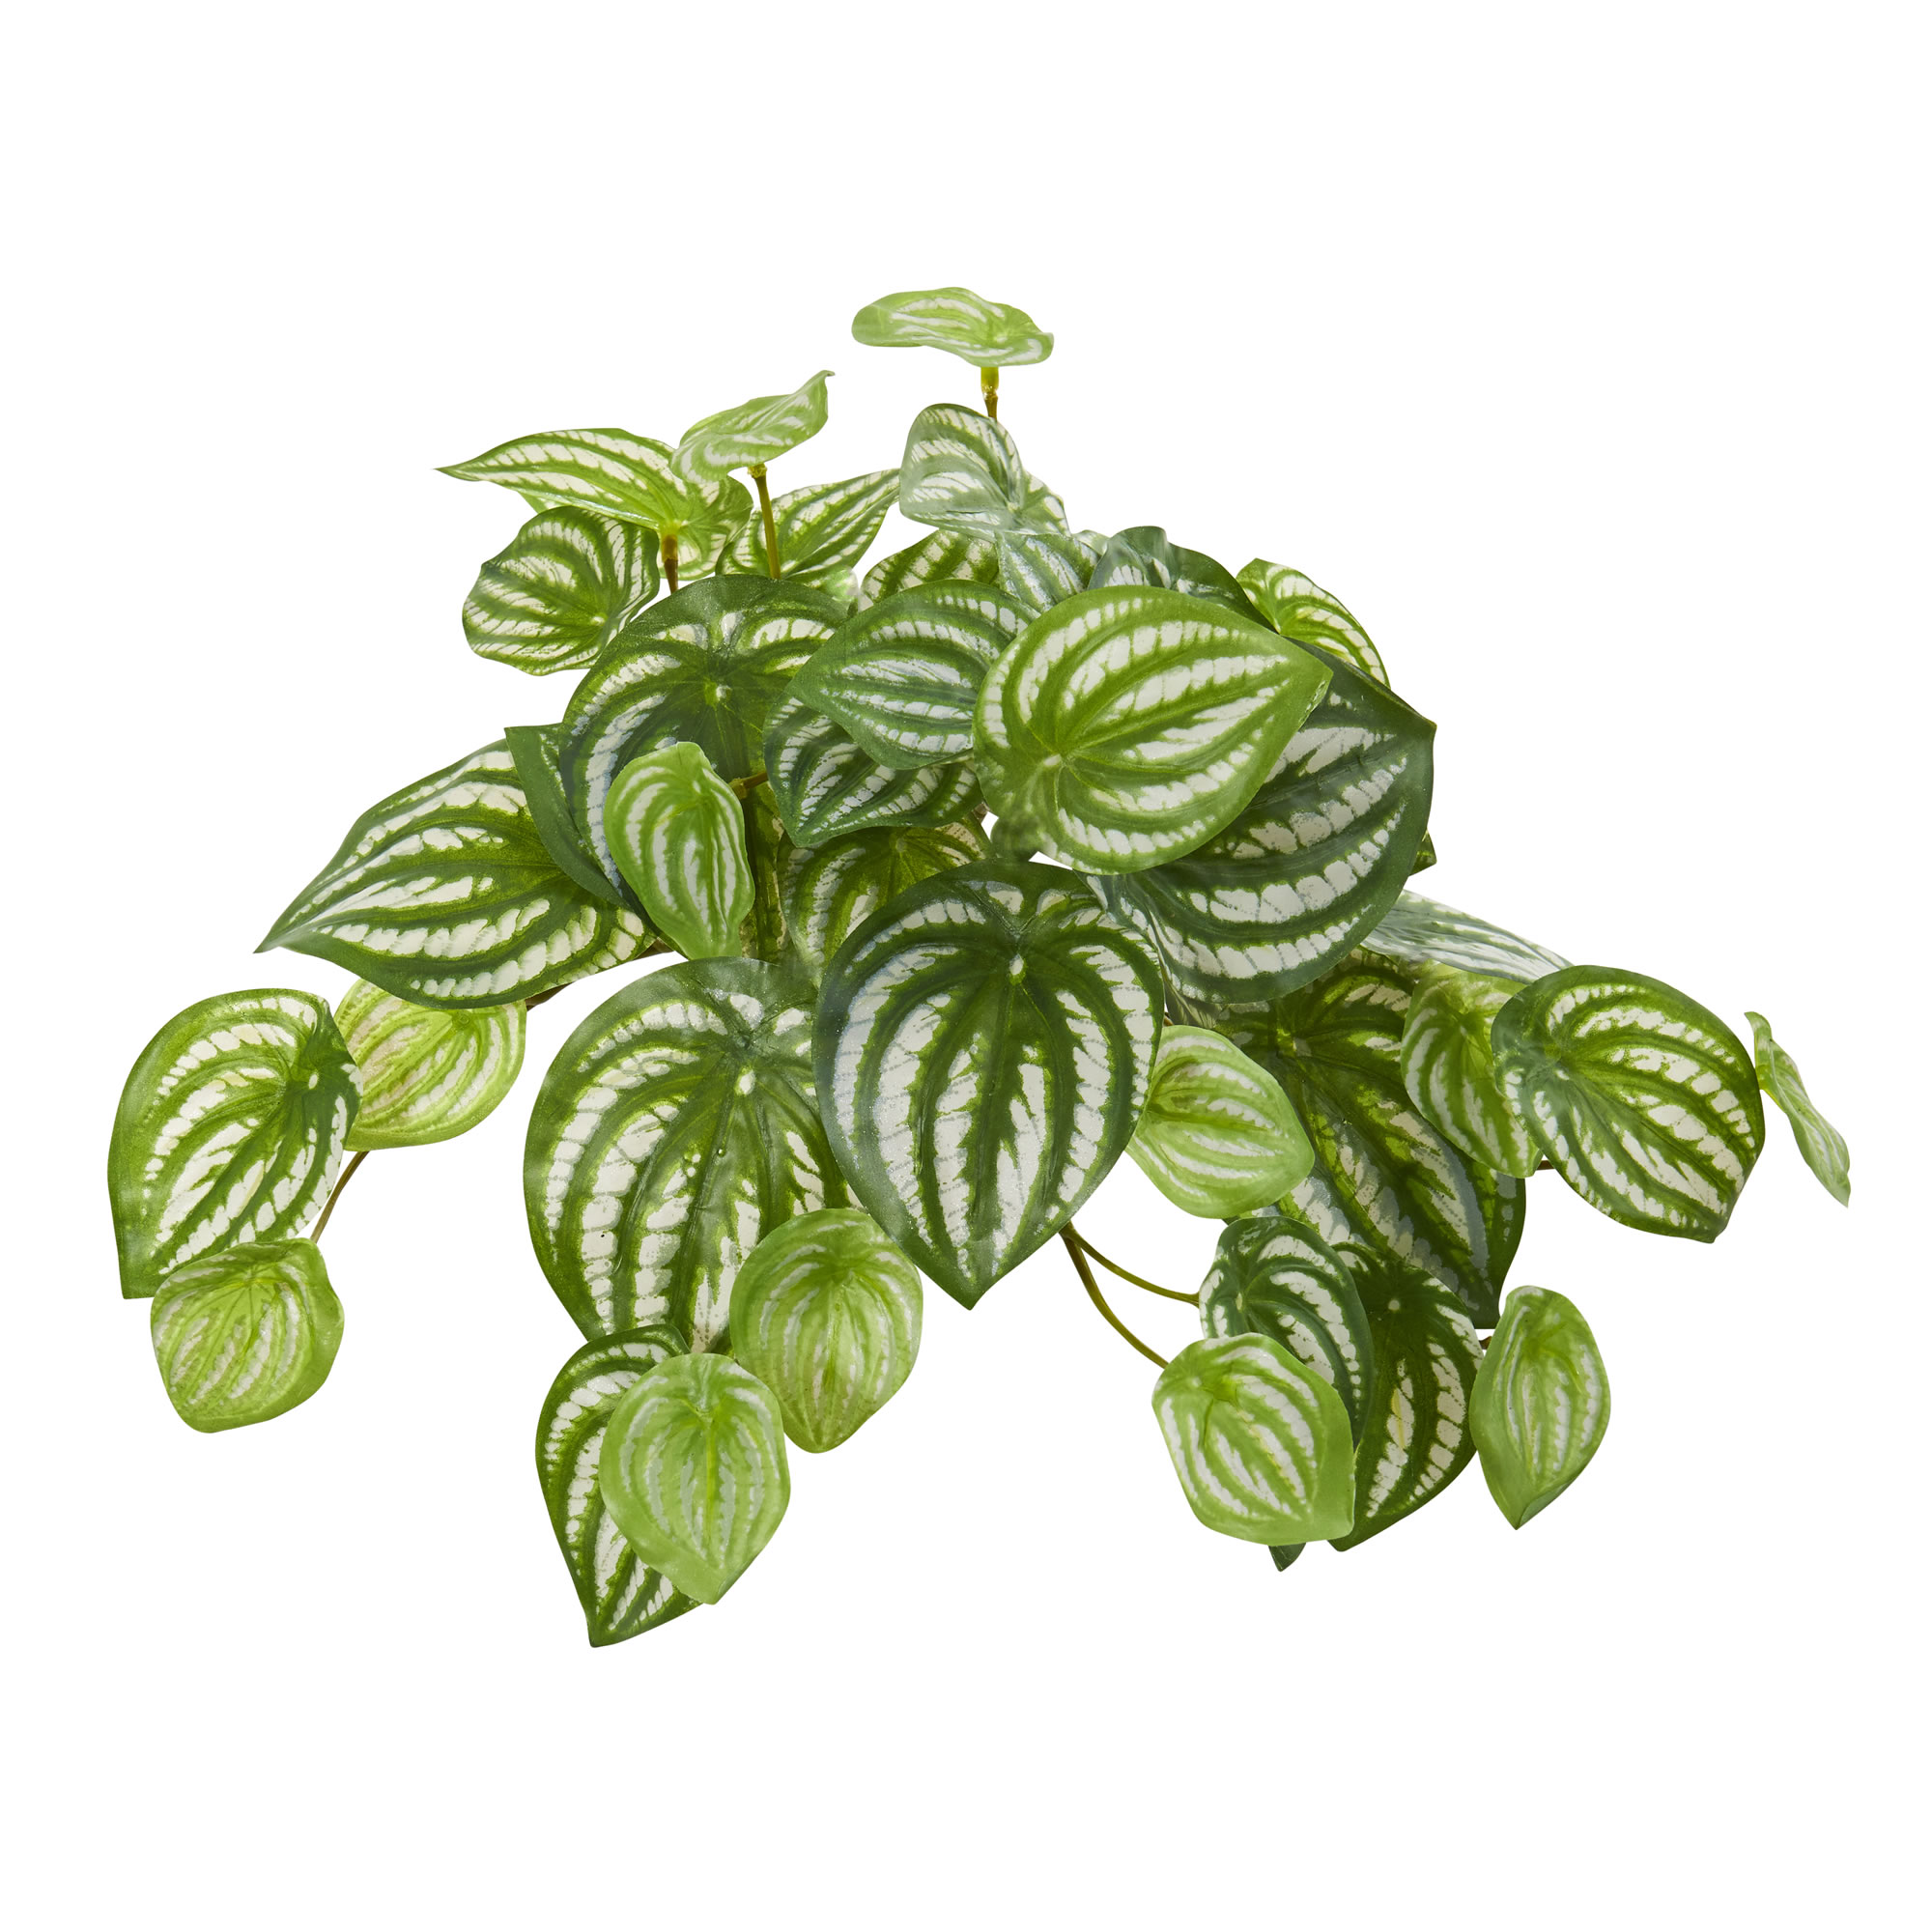 Watermelon Peperomia Hanging Artificial Bush Plant Nearly Natural 11 Set Of 12 192897000802 Ebay